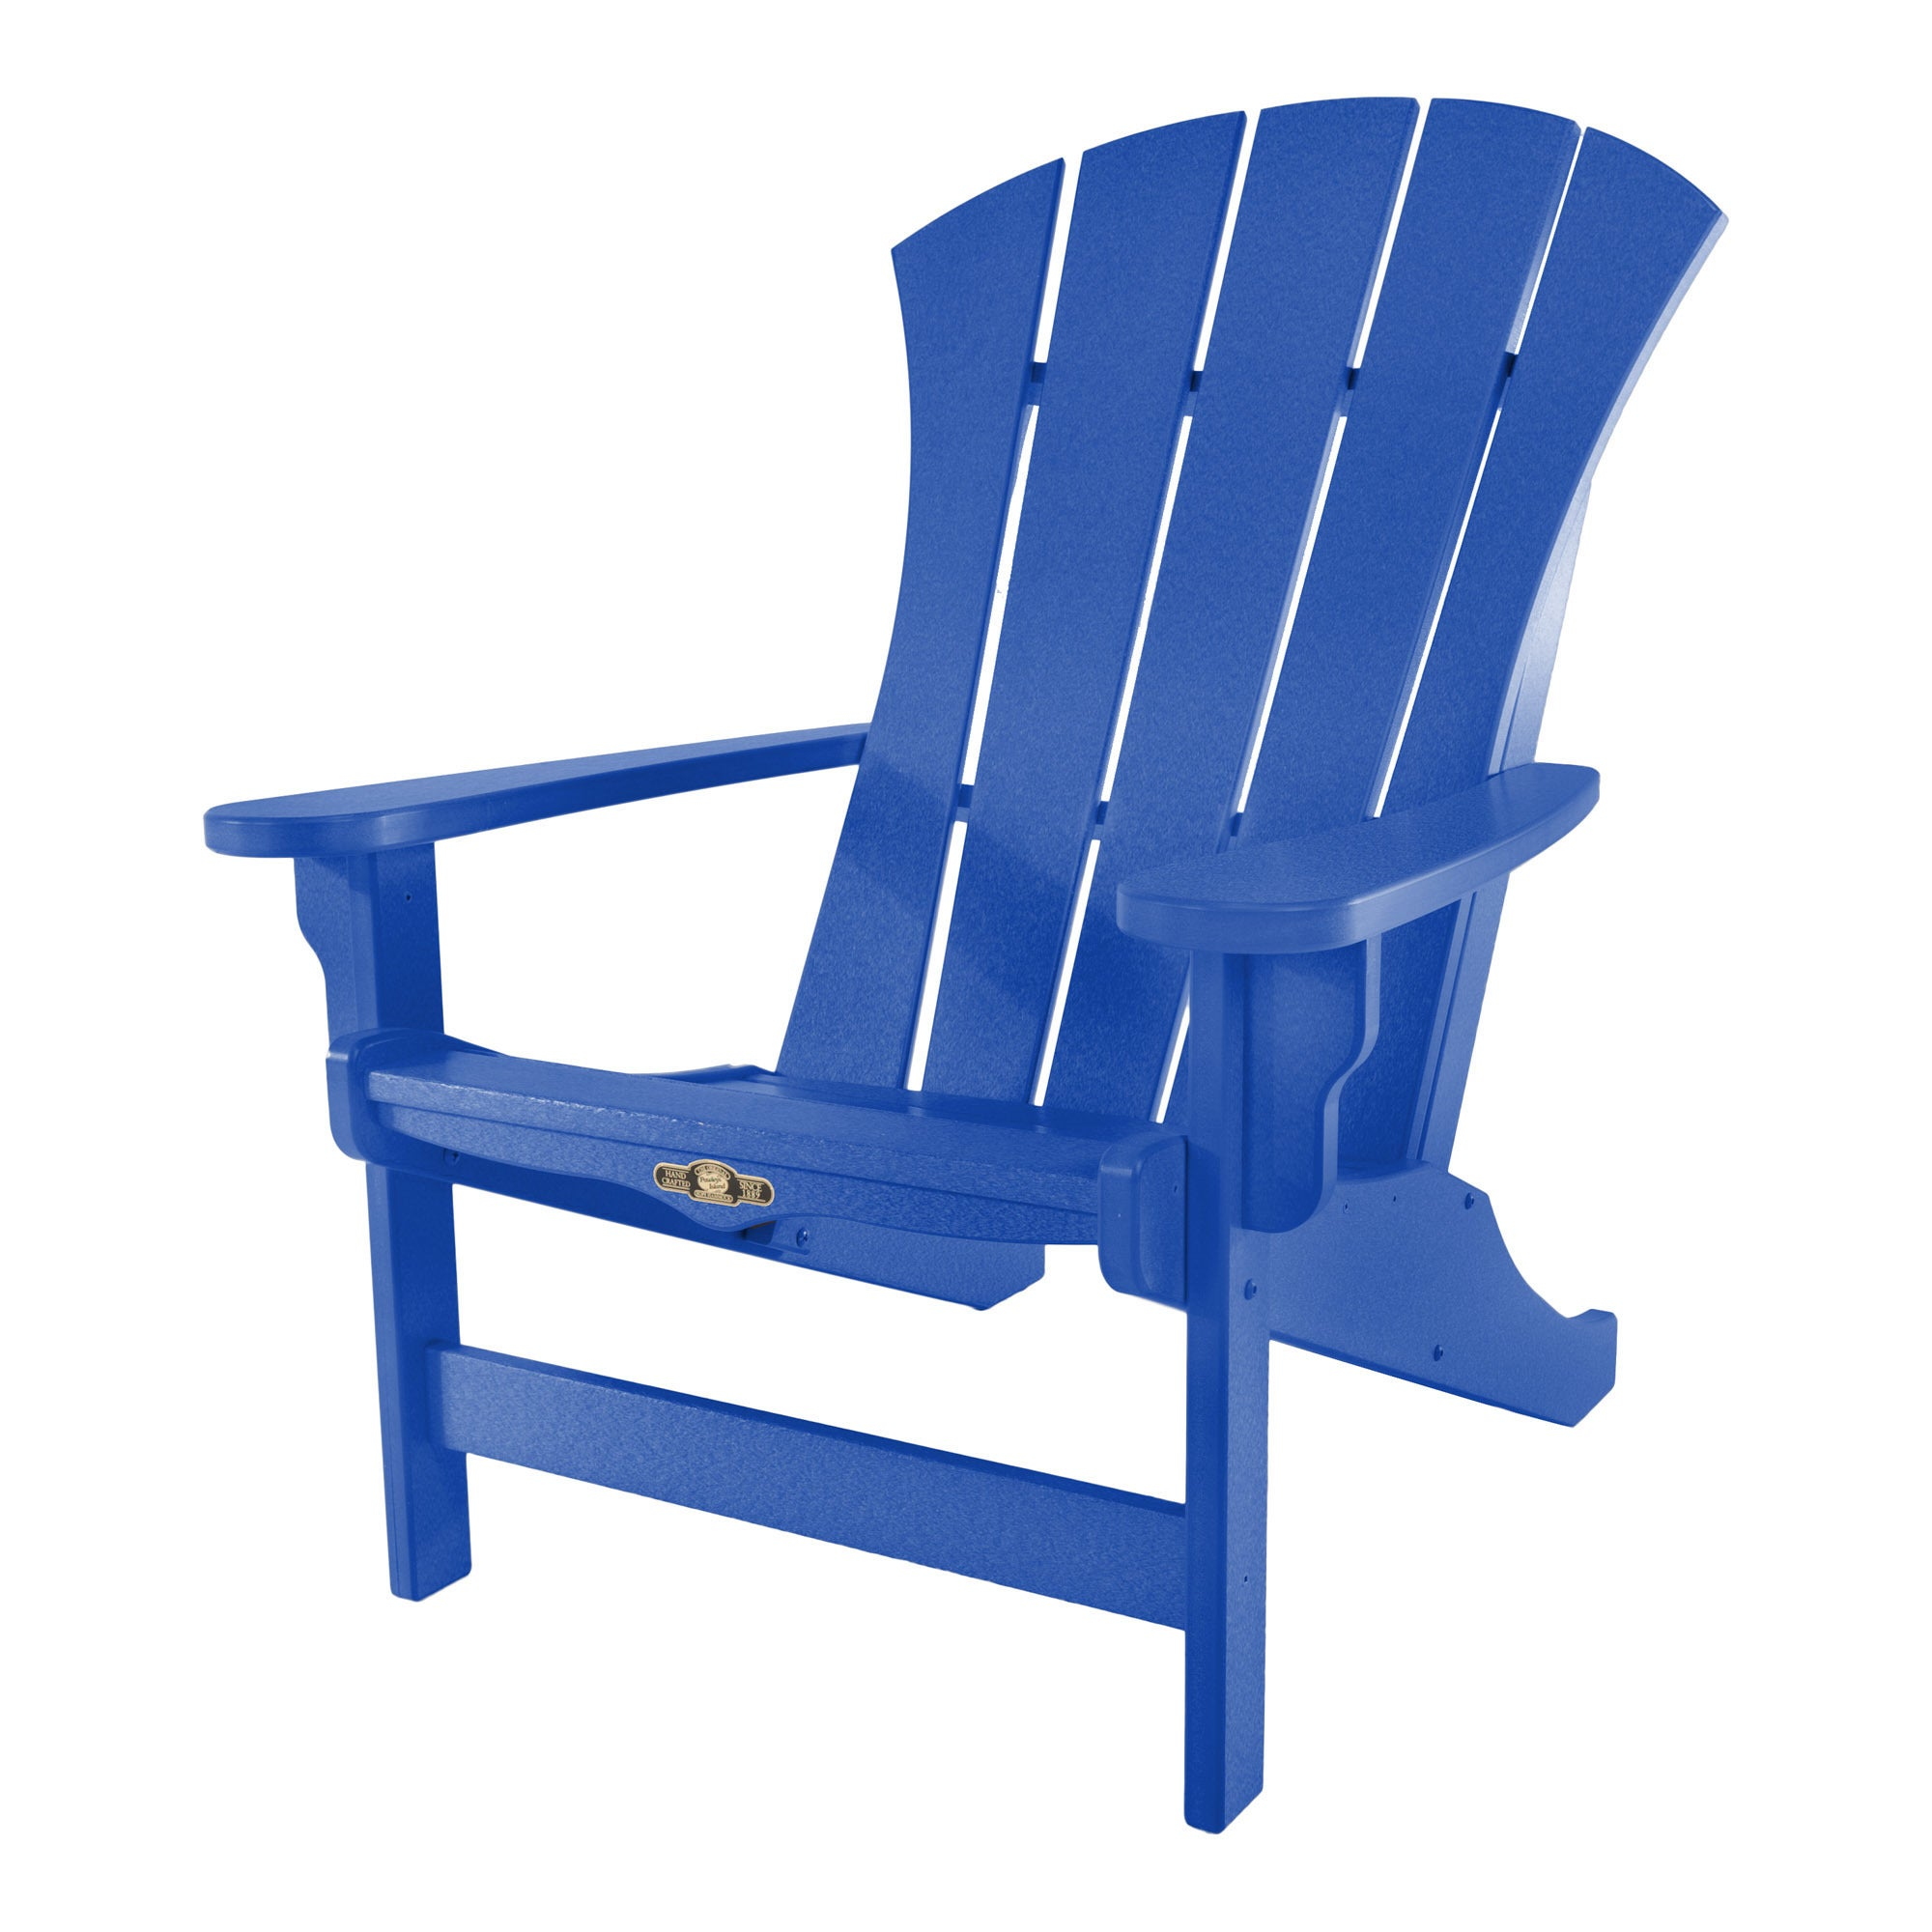 Sunrise Blue Adirondack Chair (blue), Size Single, Patio ...